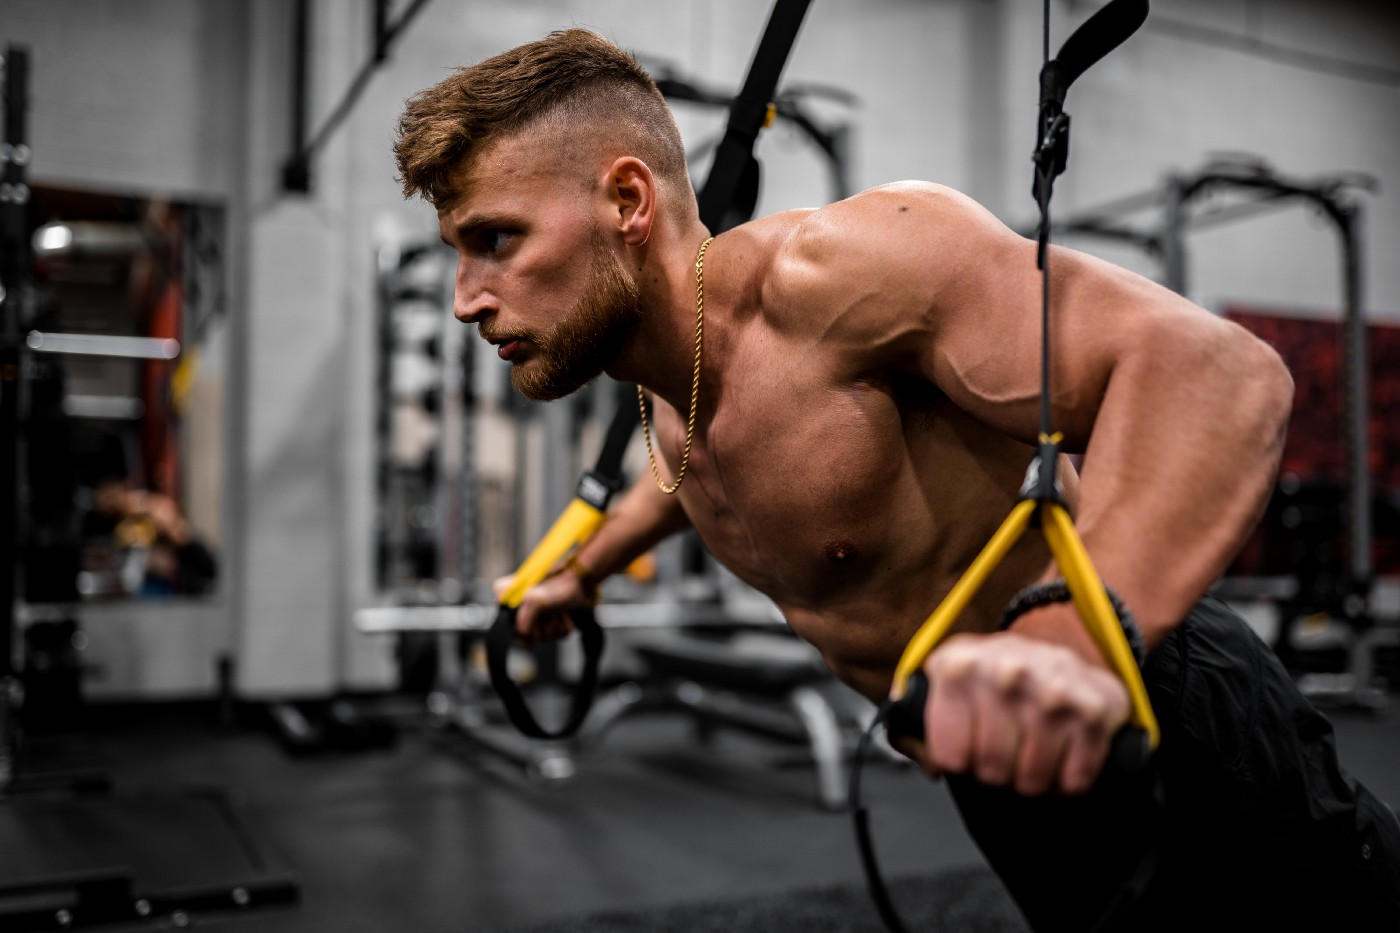 A muscular man working out